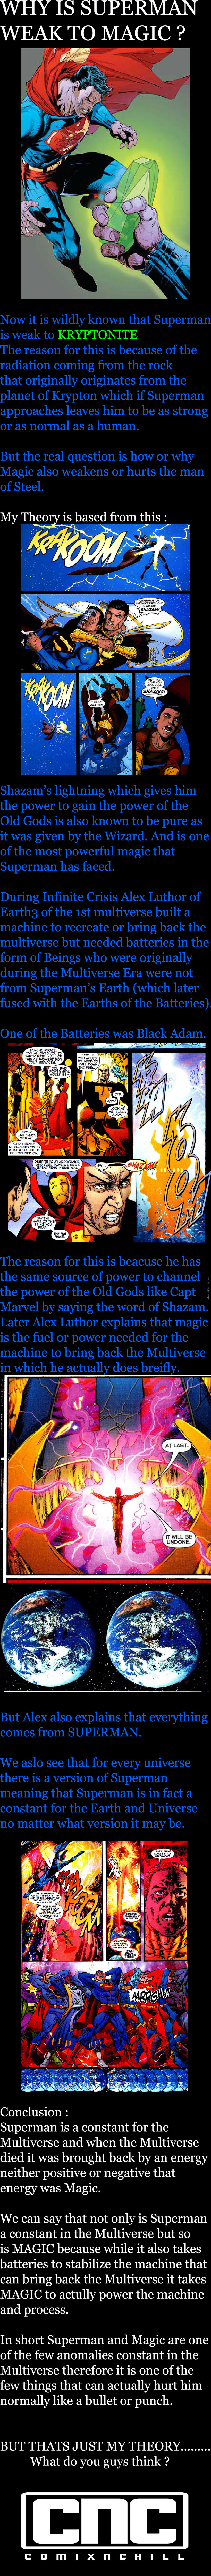 Comic Theory 1 : Superman's Weakness To Magic